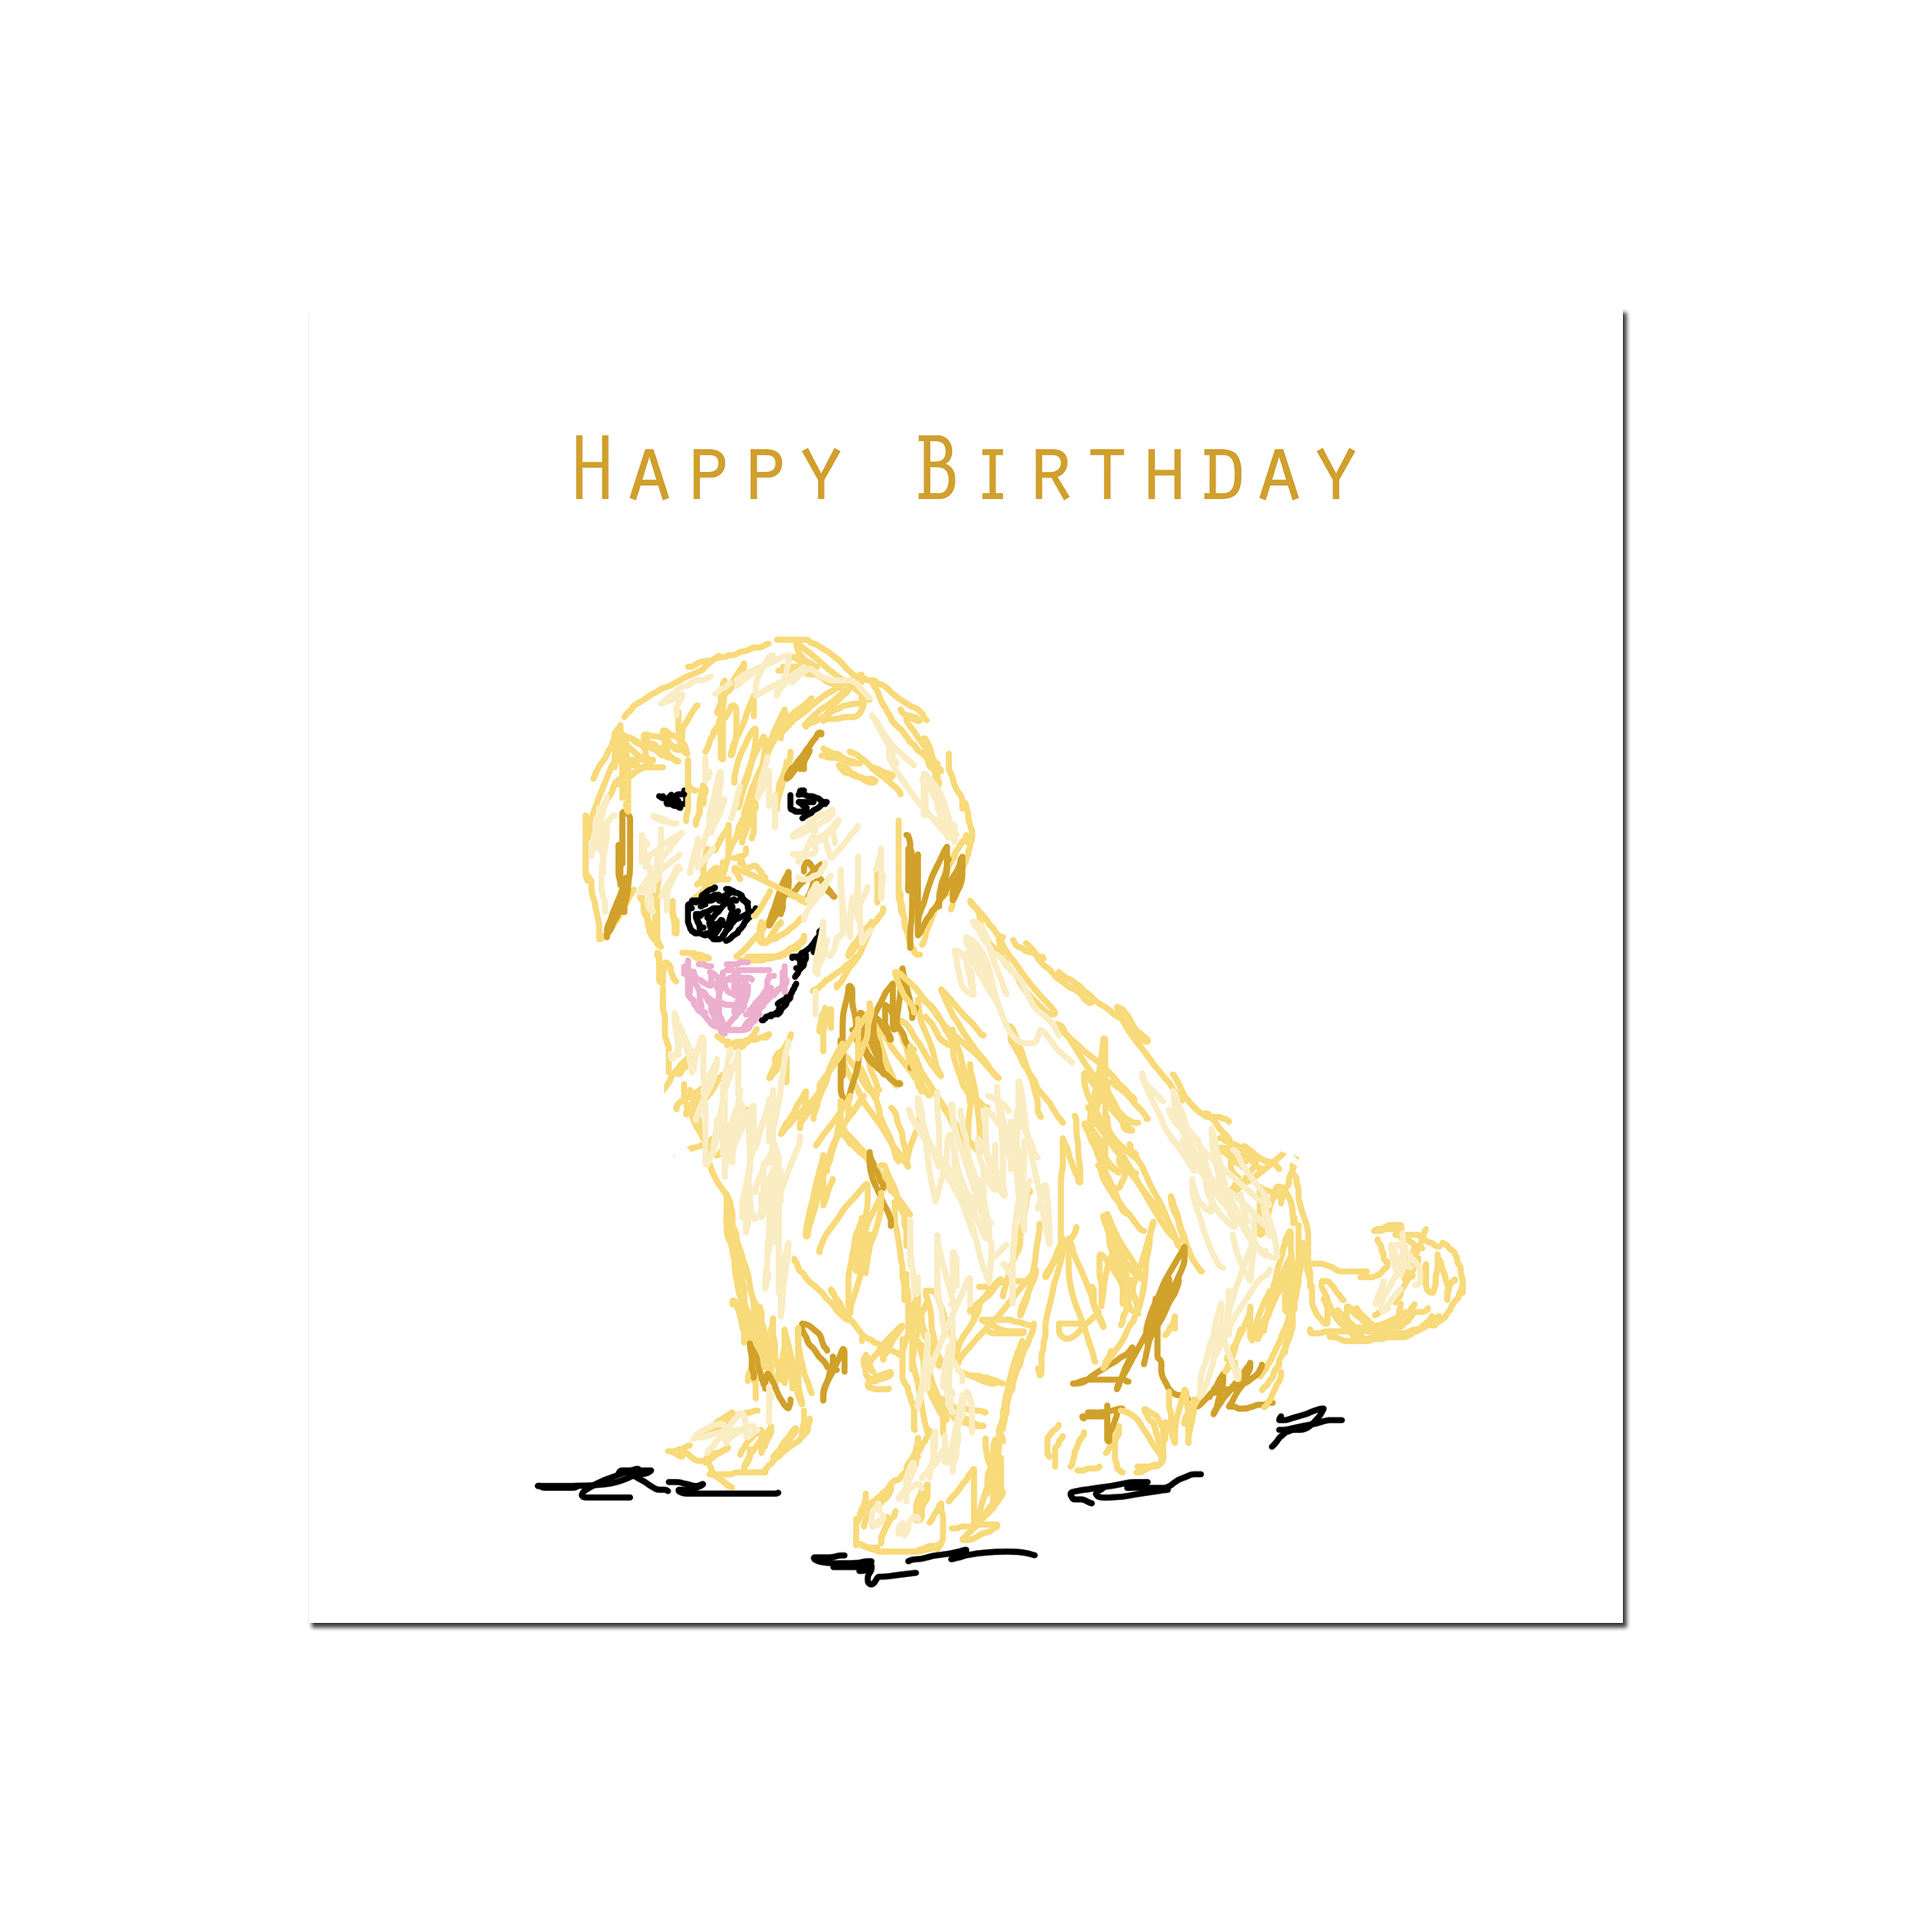 Golden retriever card design simon andrew designs dog happy birthday m4hsunfo